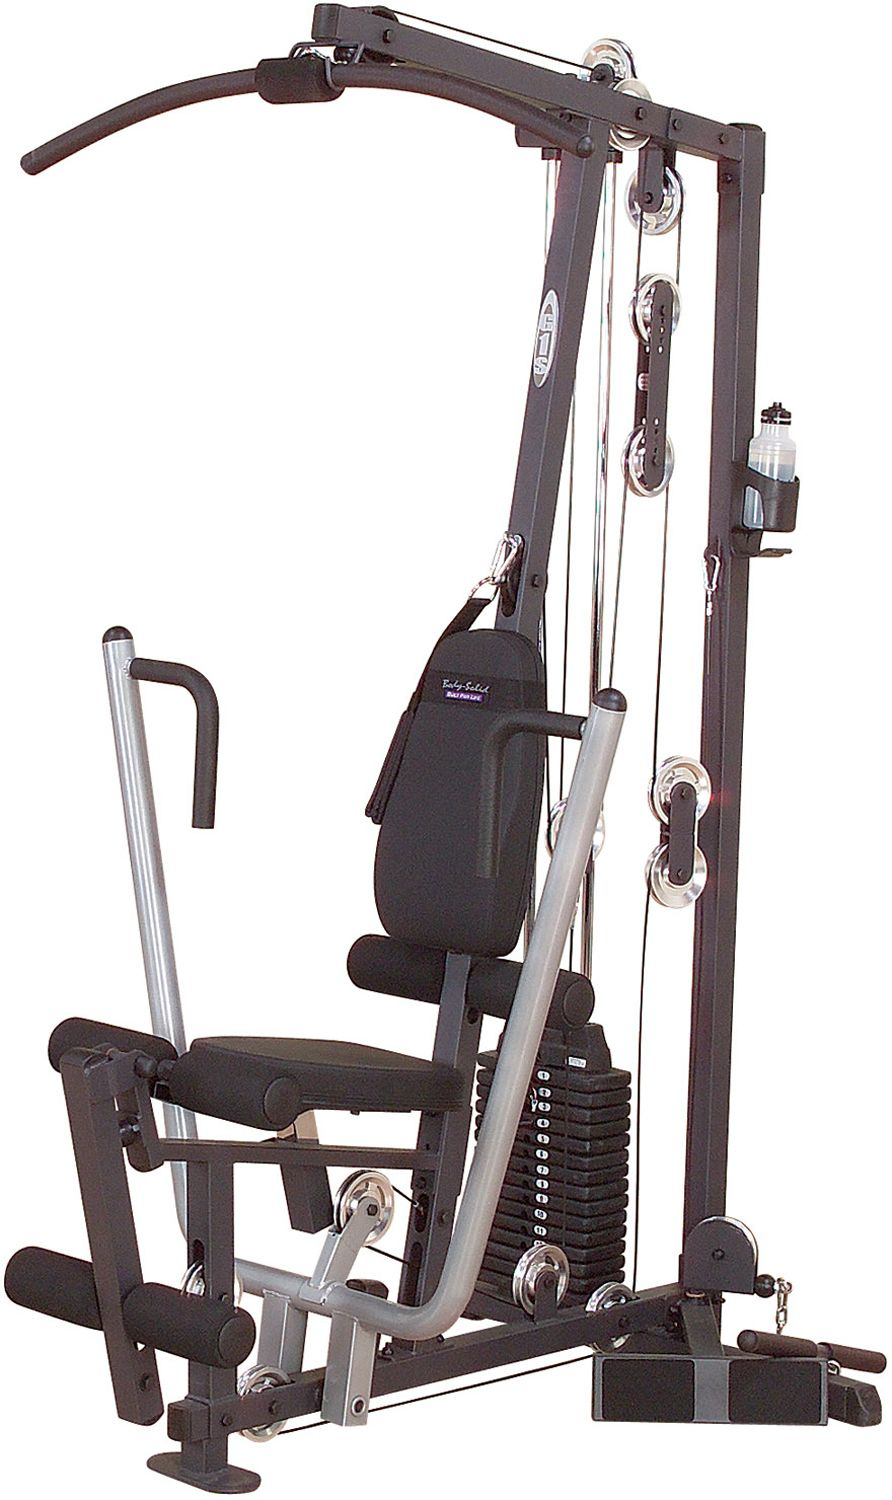 Econ prowler sled for conditioning endurance training